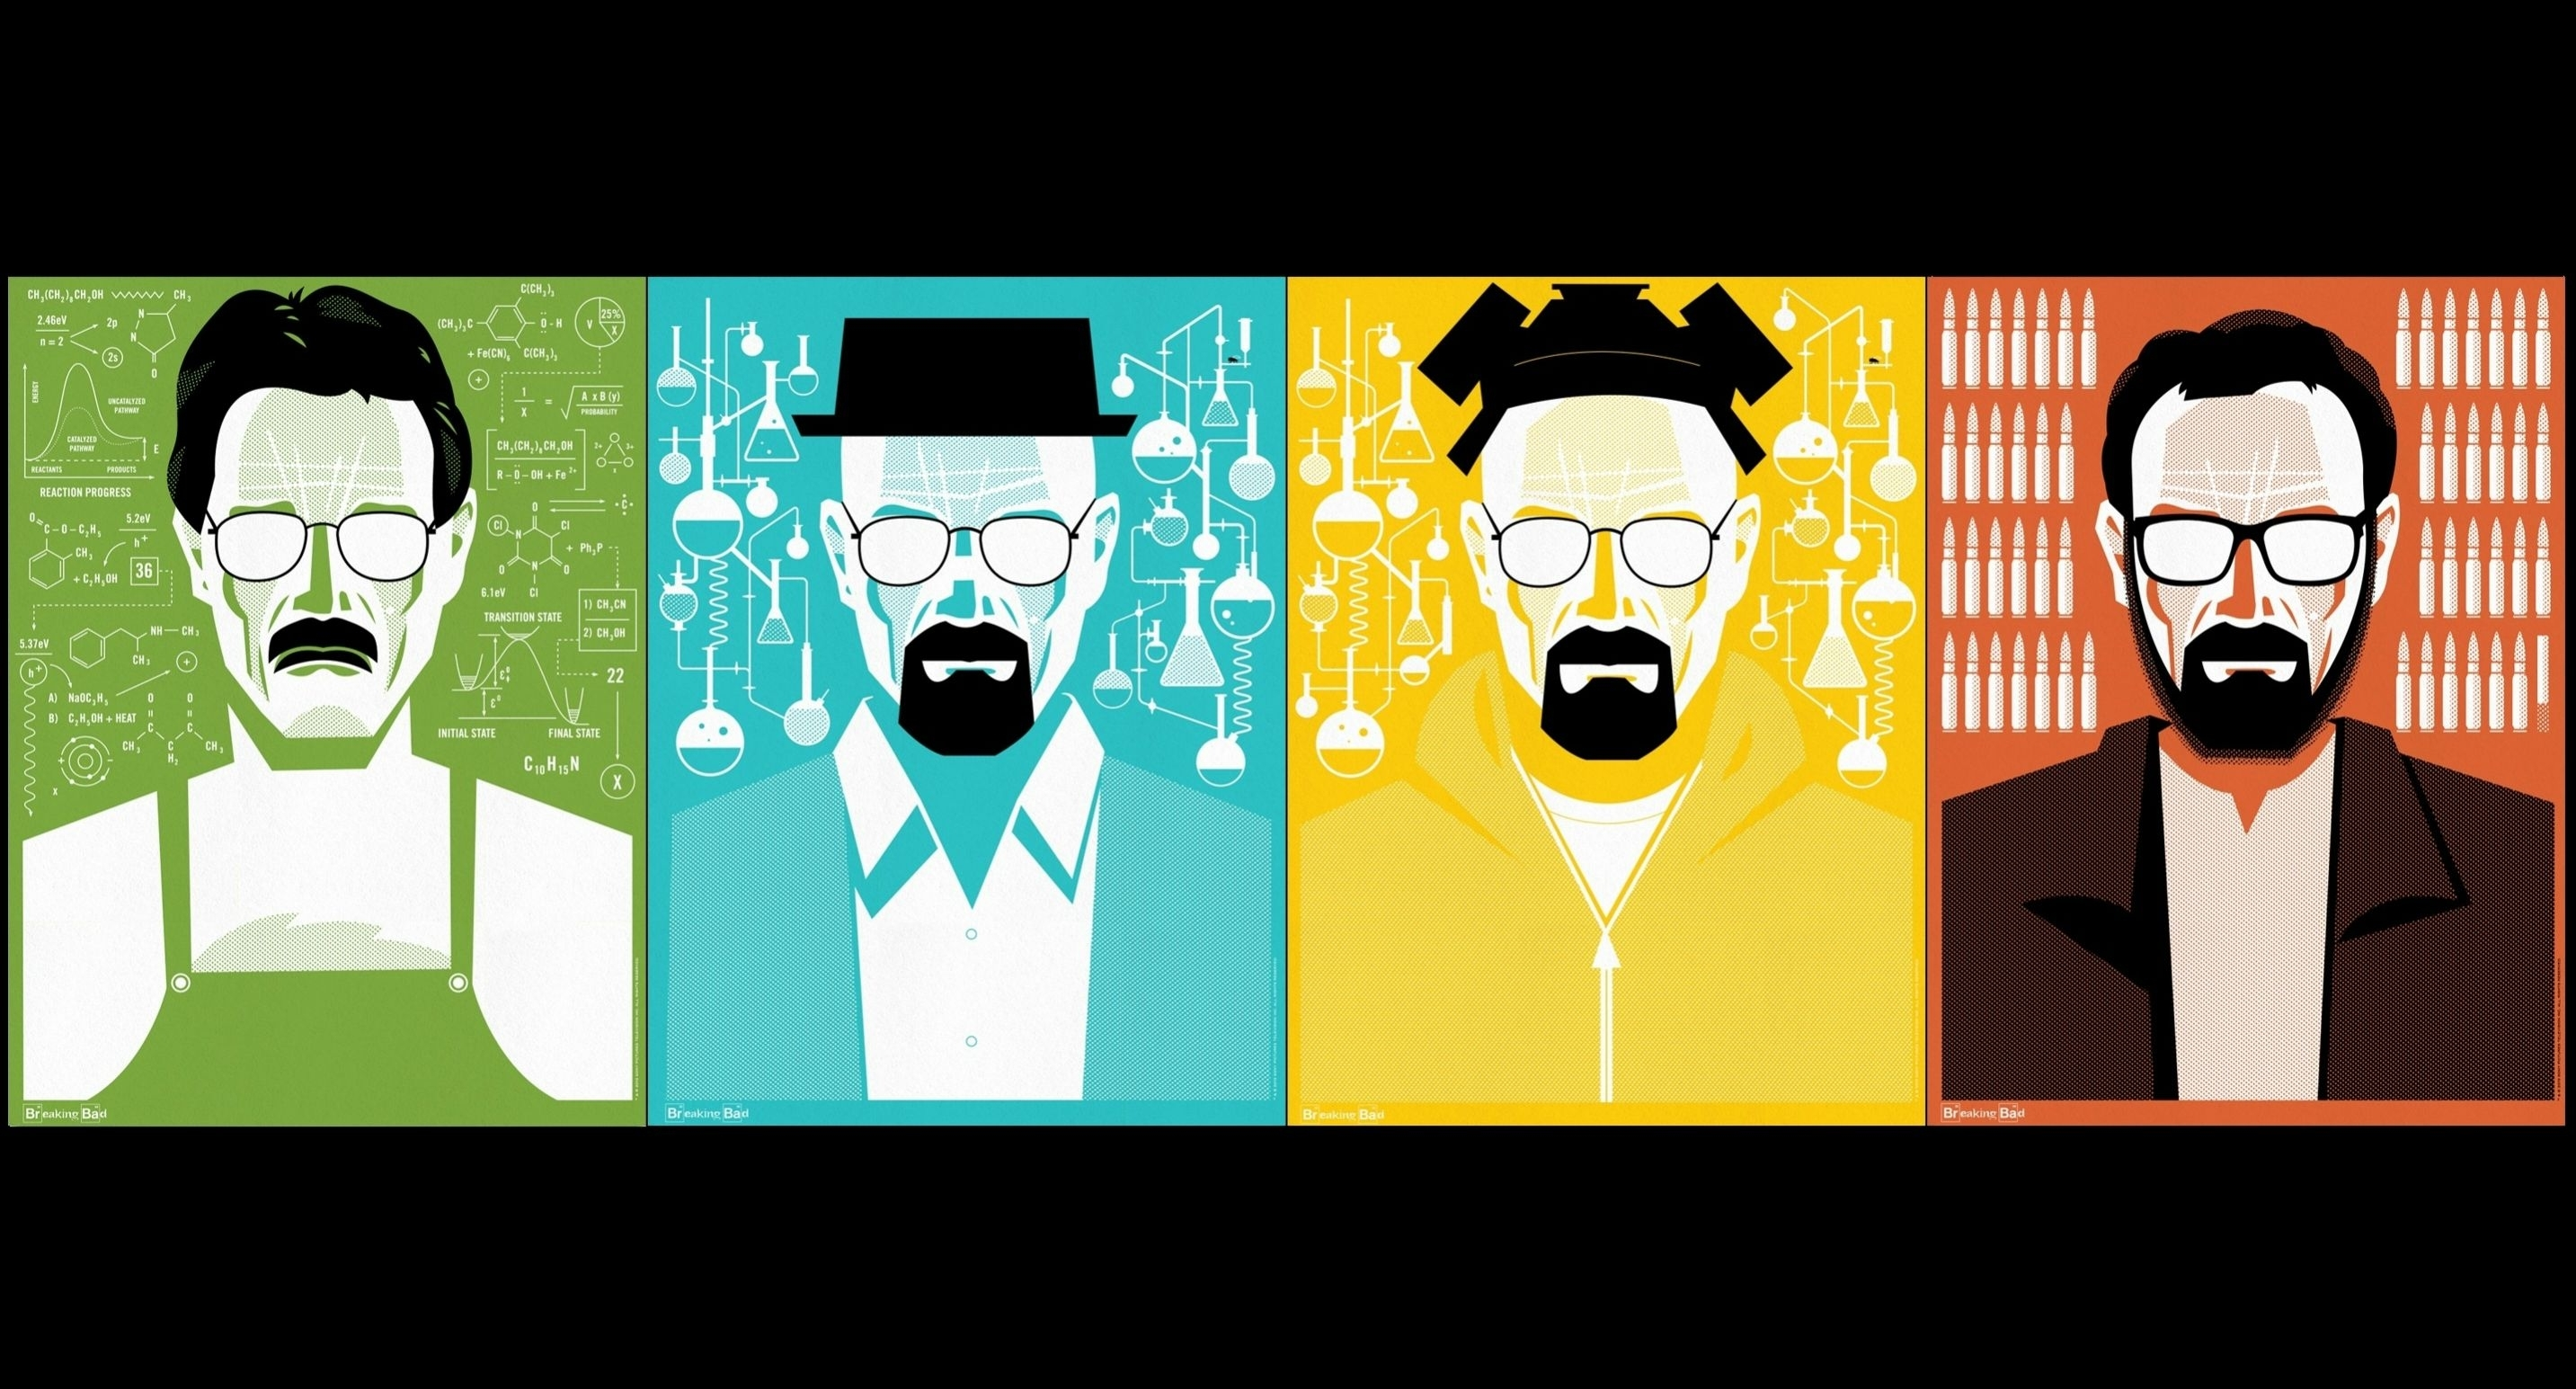 188 breaking bad hd wallpapers   background images - wallpaper abyss